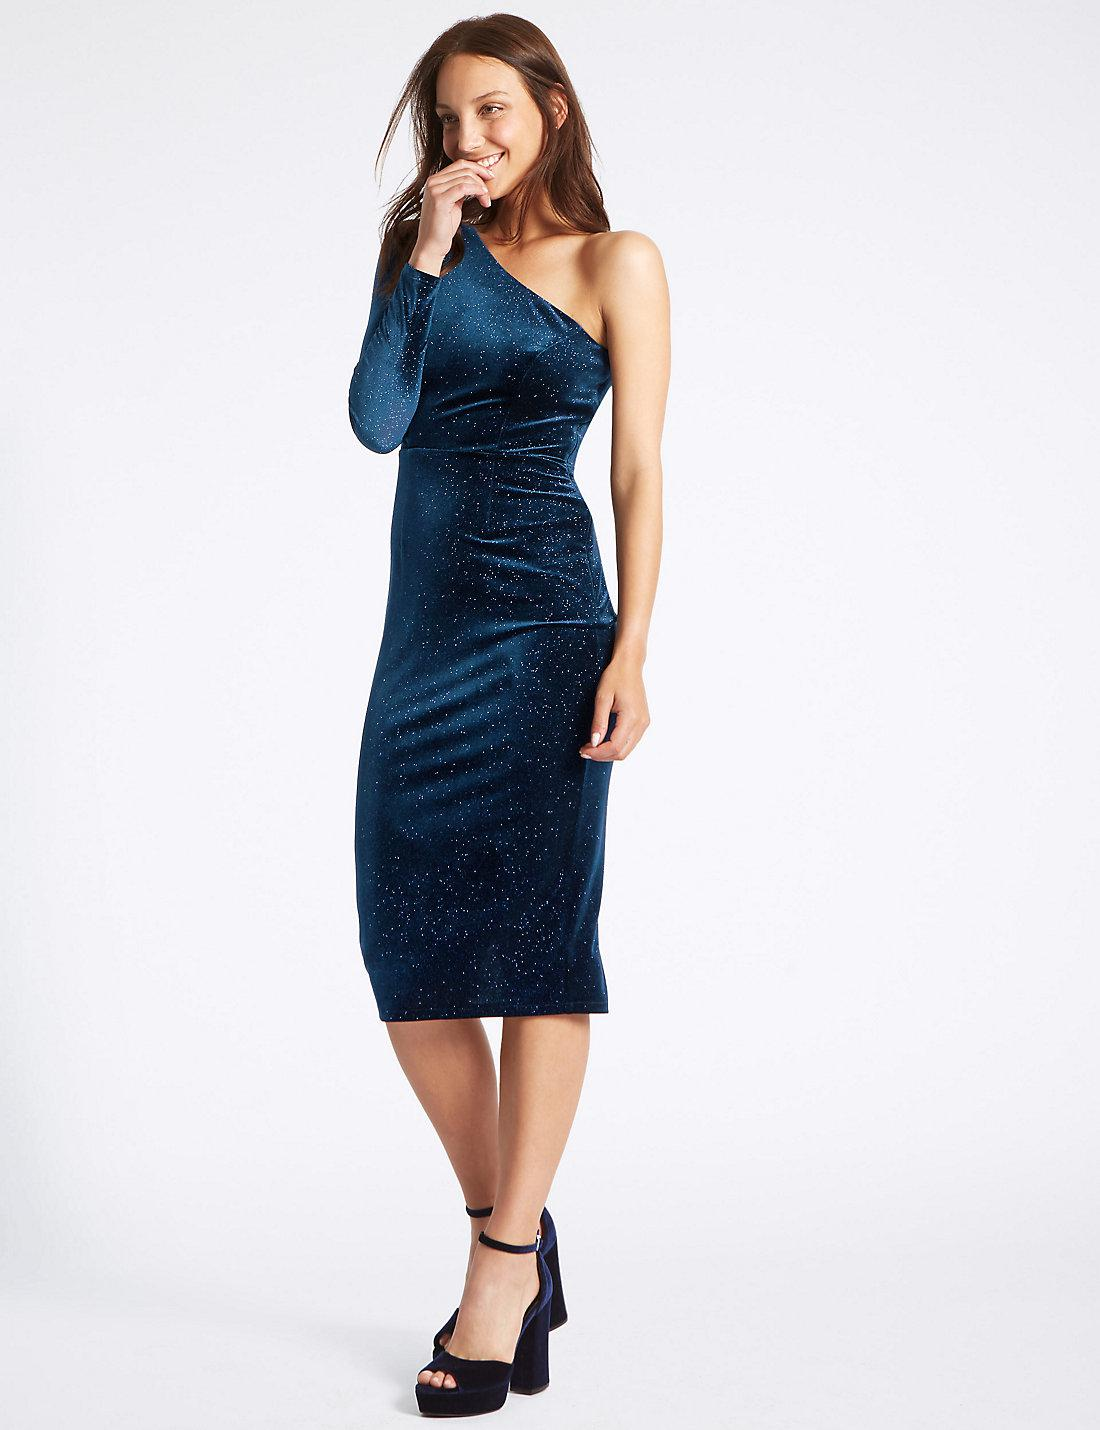 Marks and spencer bodycon dresses and leggings